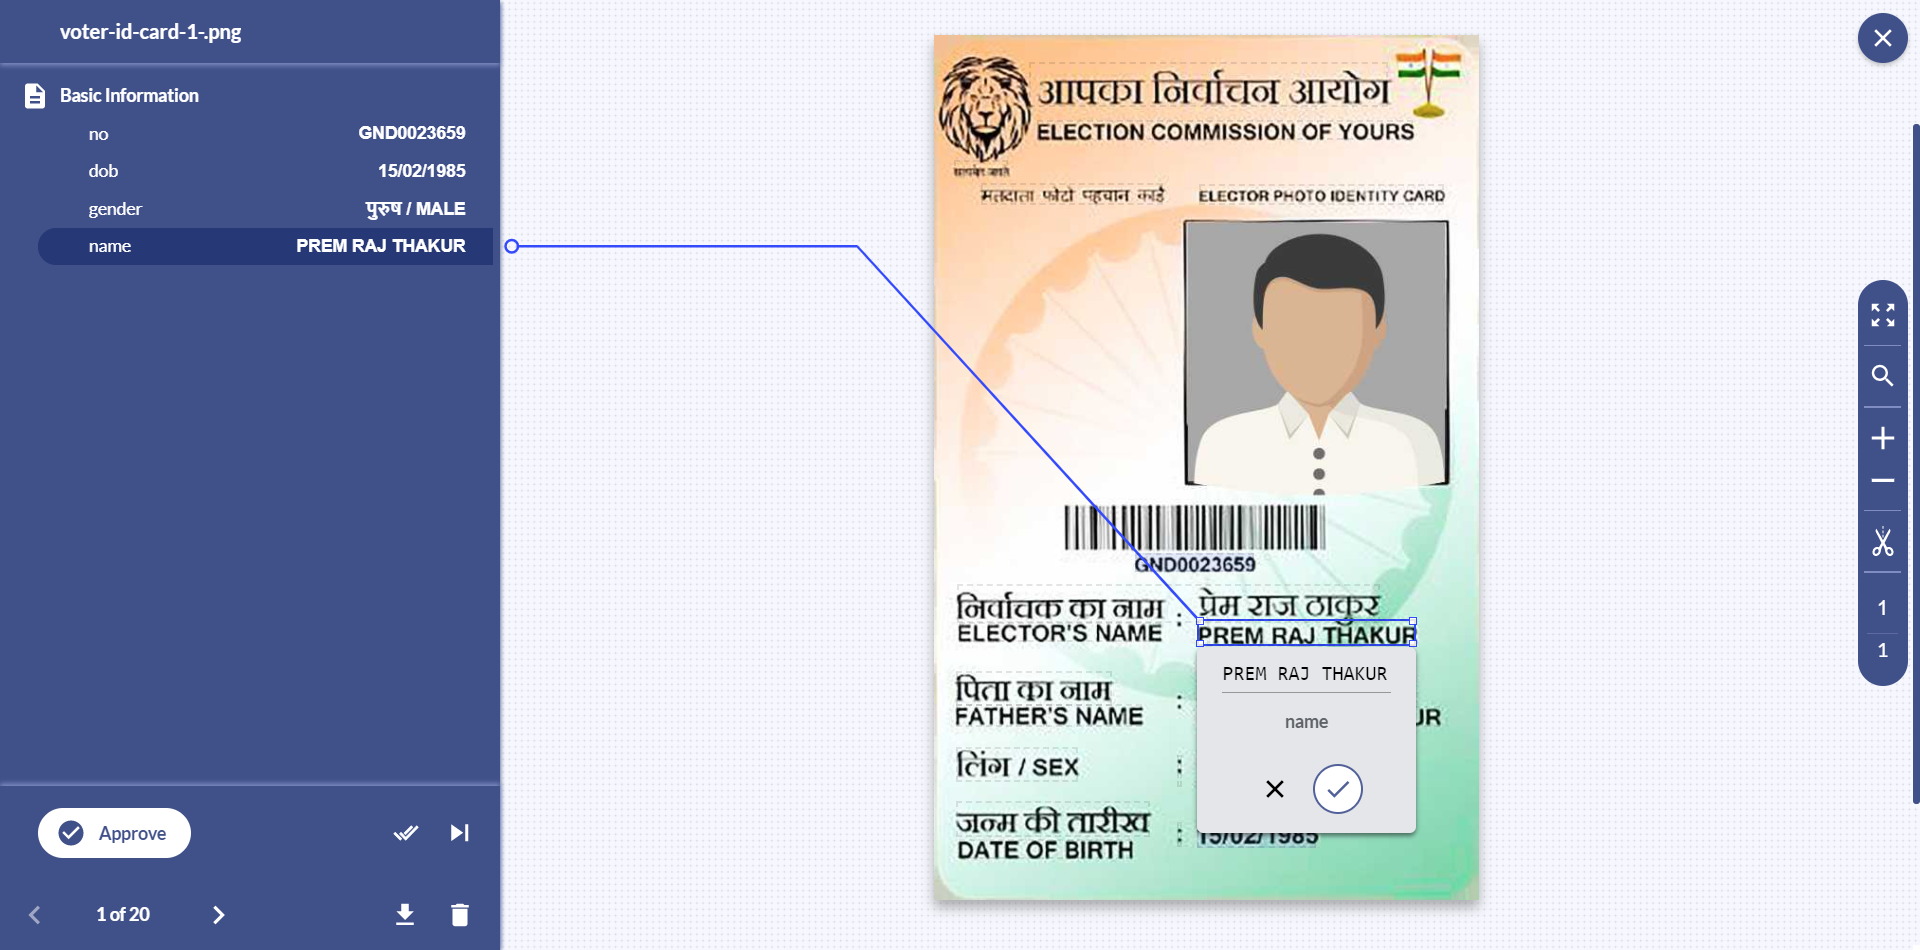 With Docsumo, free up your essential resources by automating Voter ID card details processing with 98% accuracy. KYC details are verified for incoherent data points and tested against Government database.